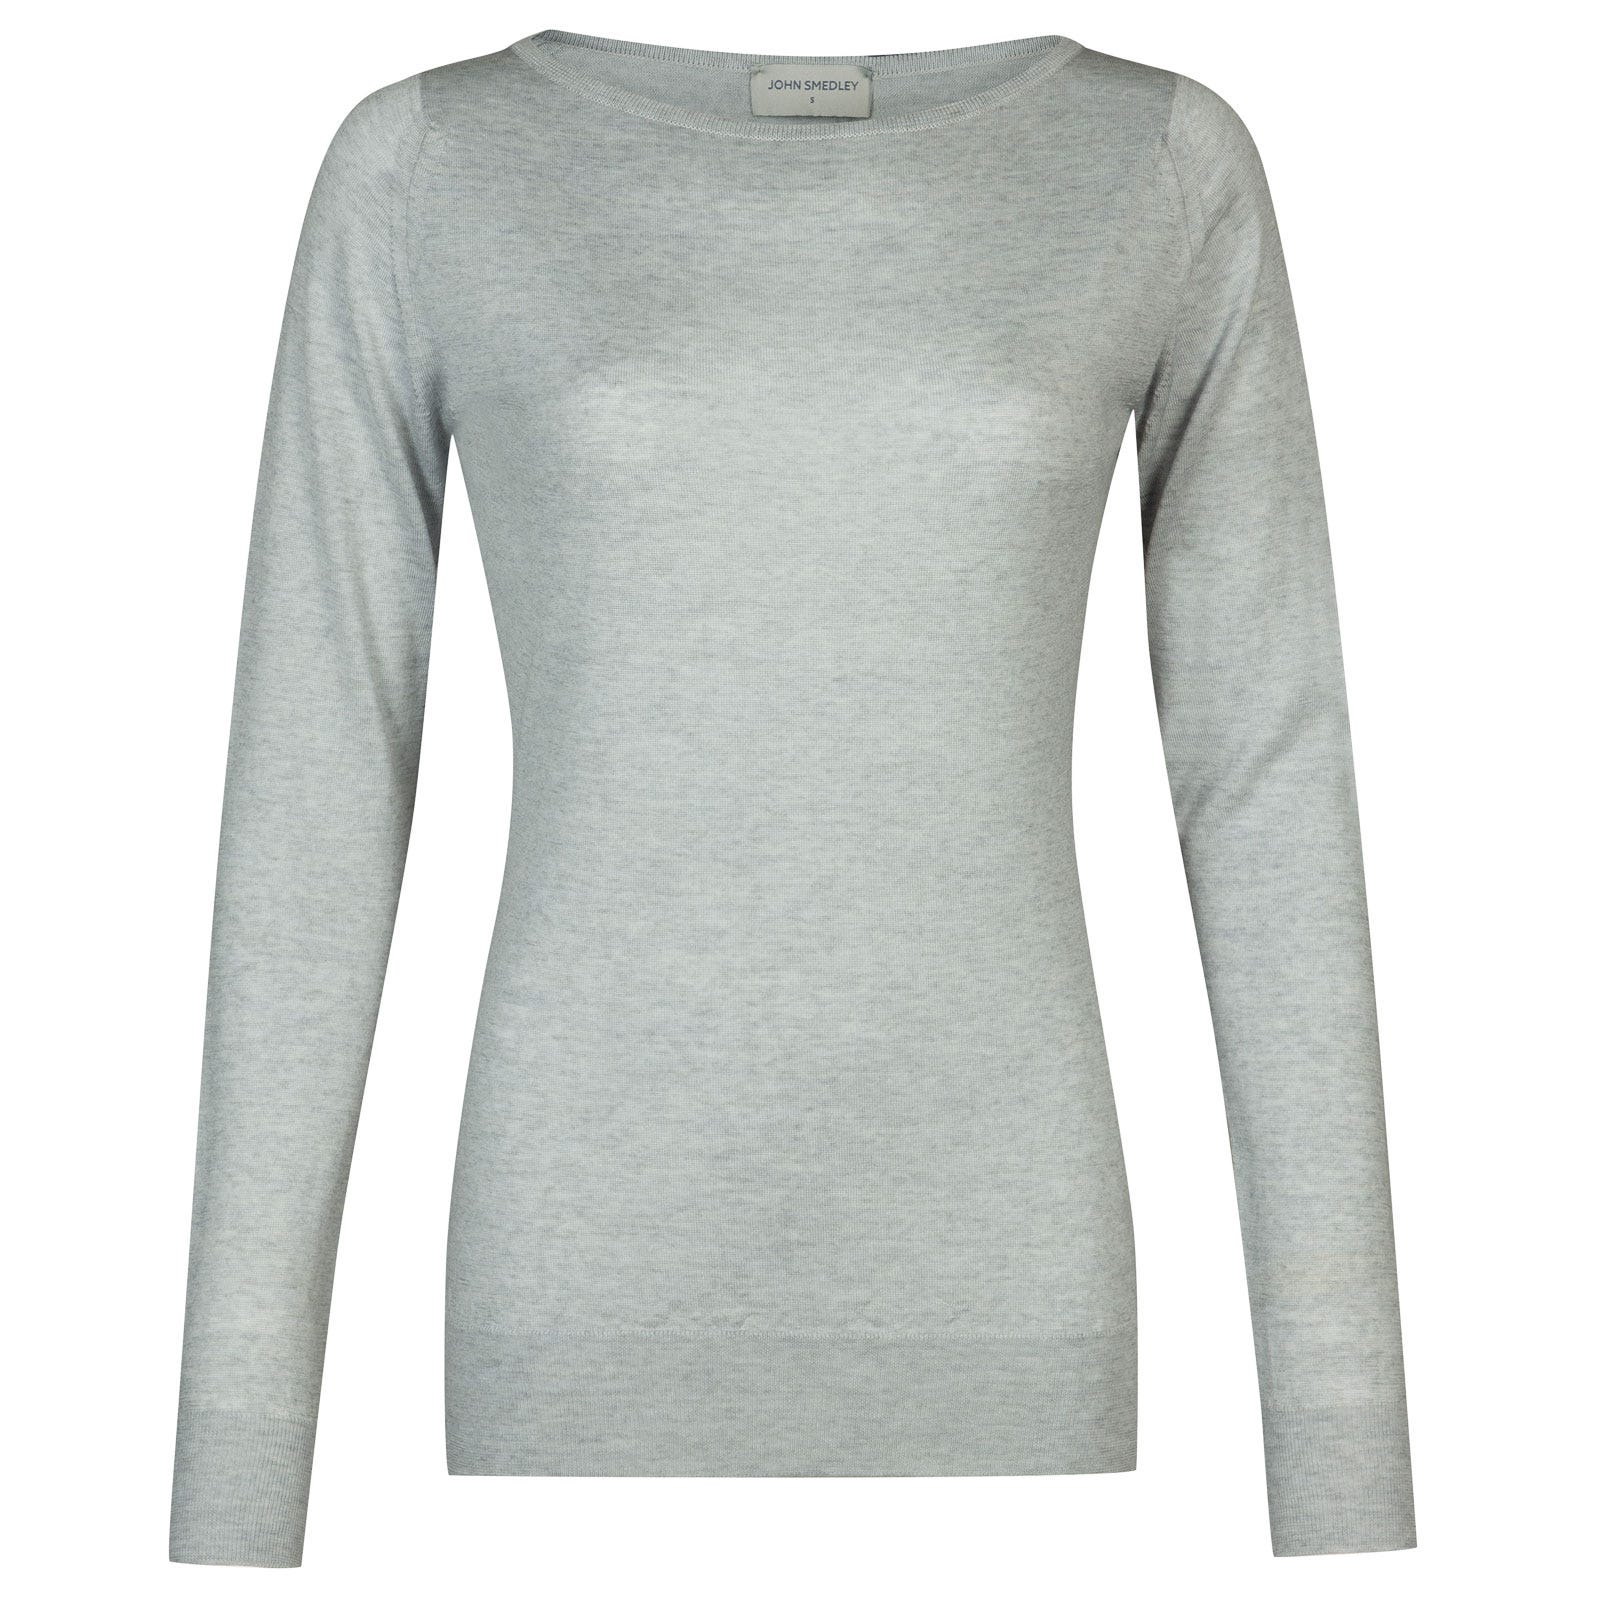 John Smedley susan Merino Wool Sweater in Bardot Grey-S